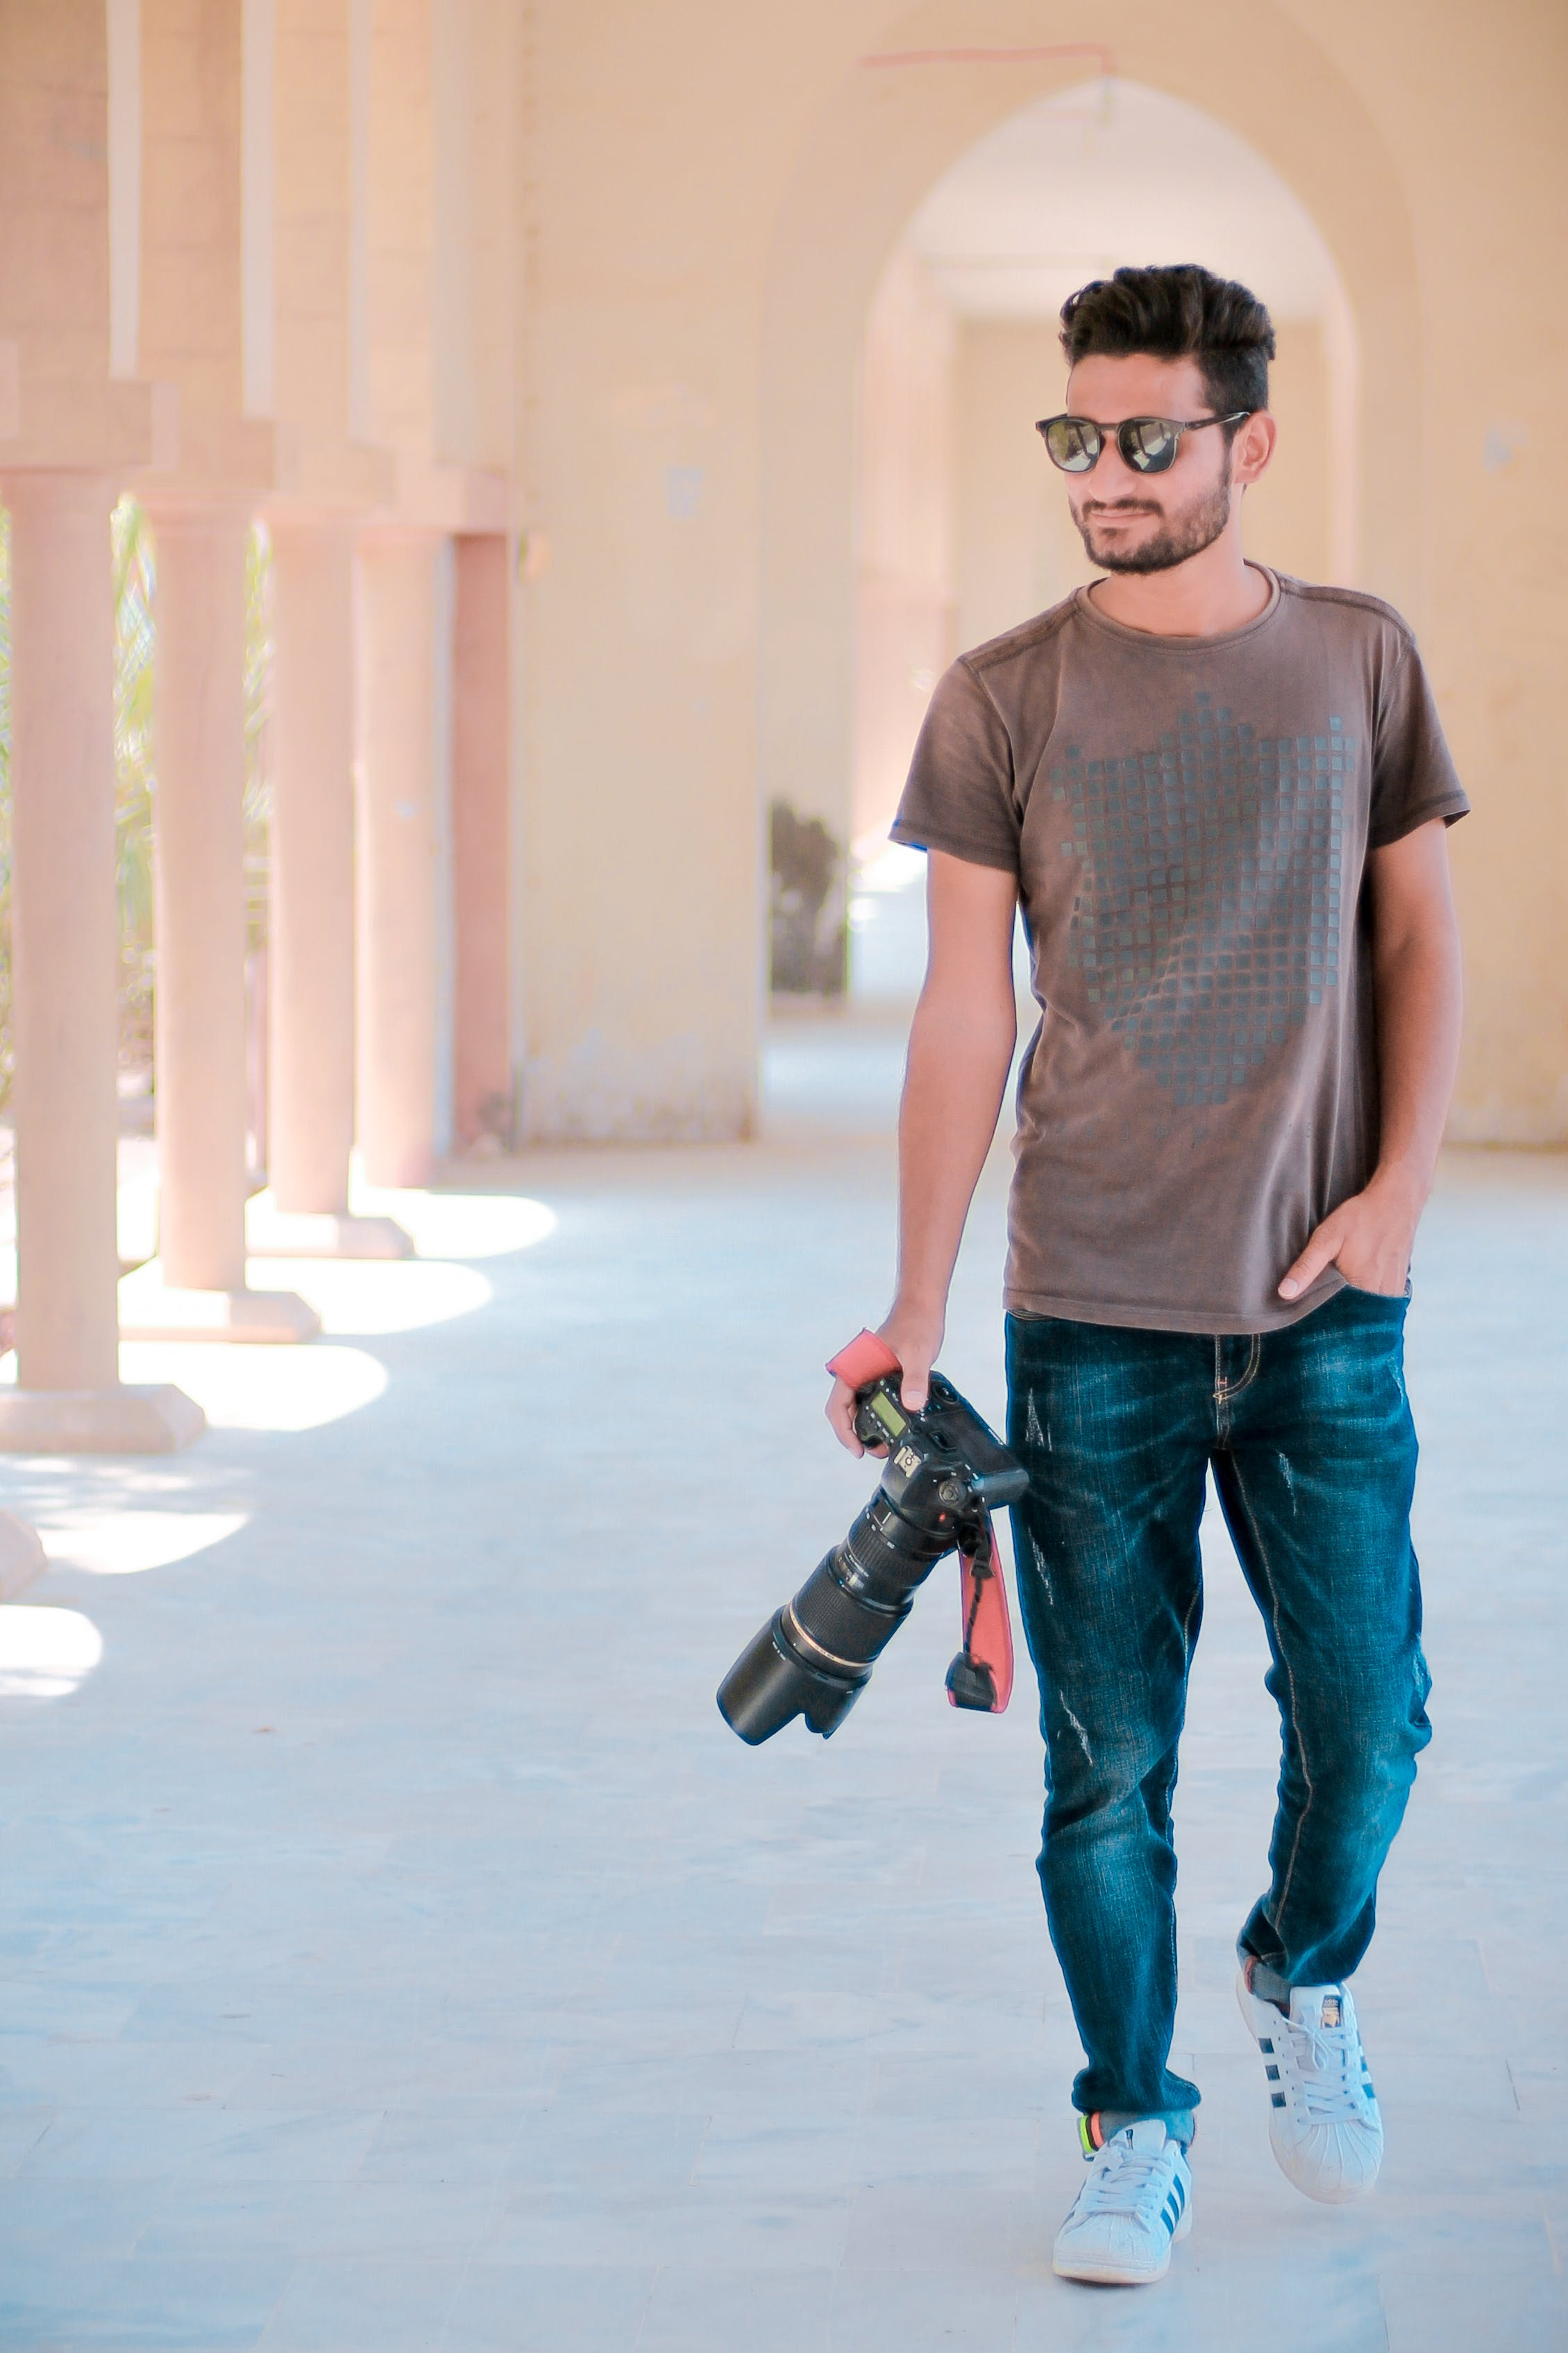 Man Walking On Hallway While Holding Dslr Camera